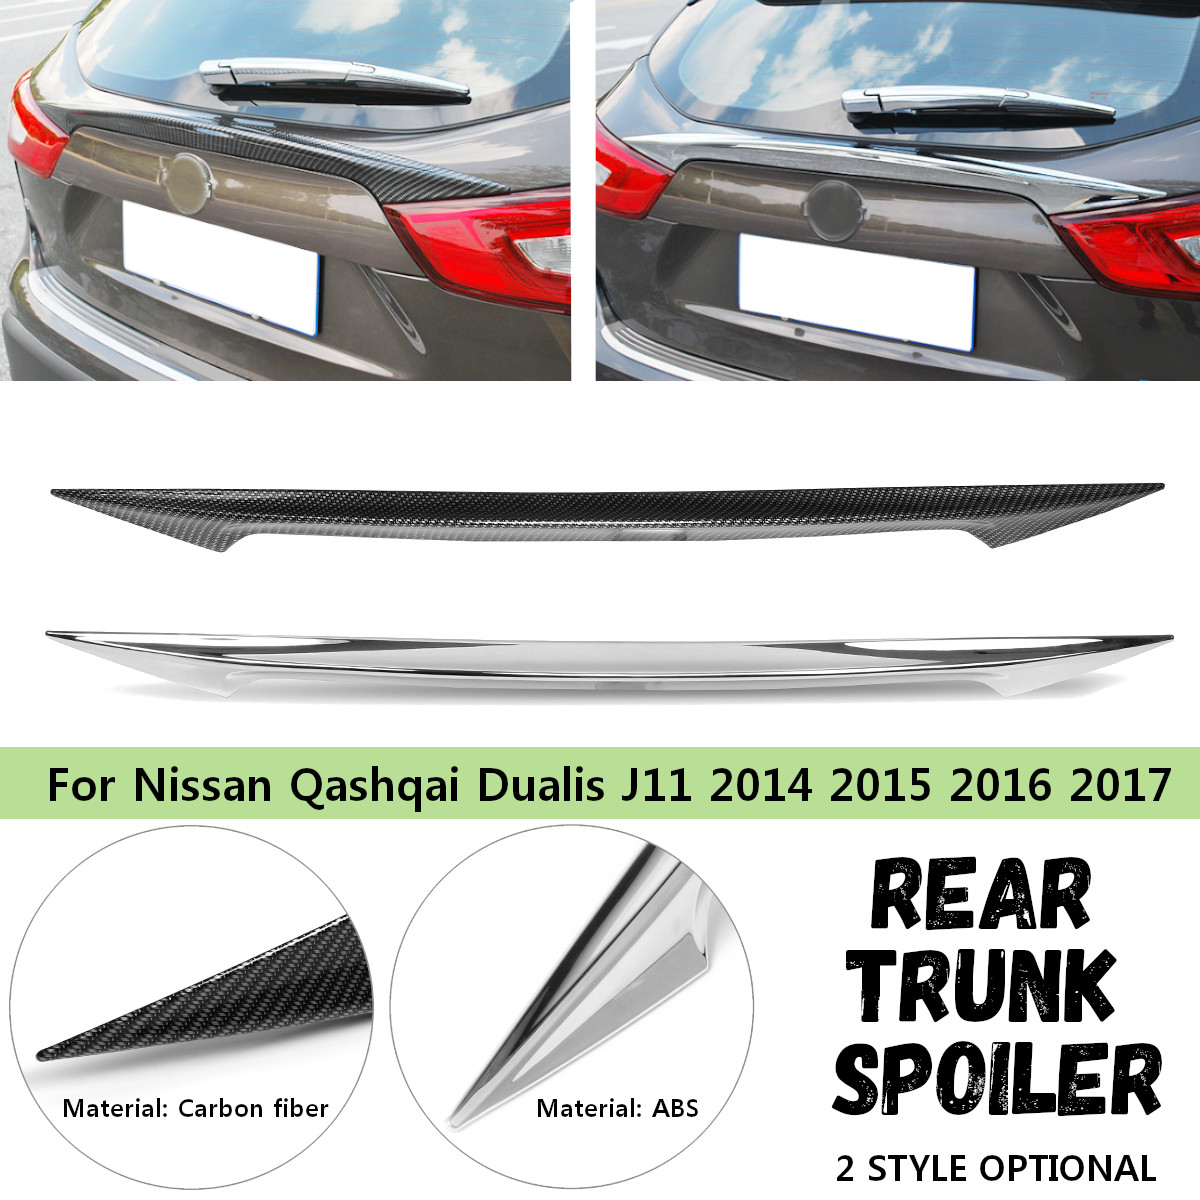 Car Rear Trunk Tail Gate Spoiler Wing Cover Sticker Carbon Fiber ABS for Nissan Qashqai Dualis J11 2014 2015 2016 2017 2018 2019 Spoilers & Wings     - title=